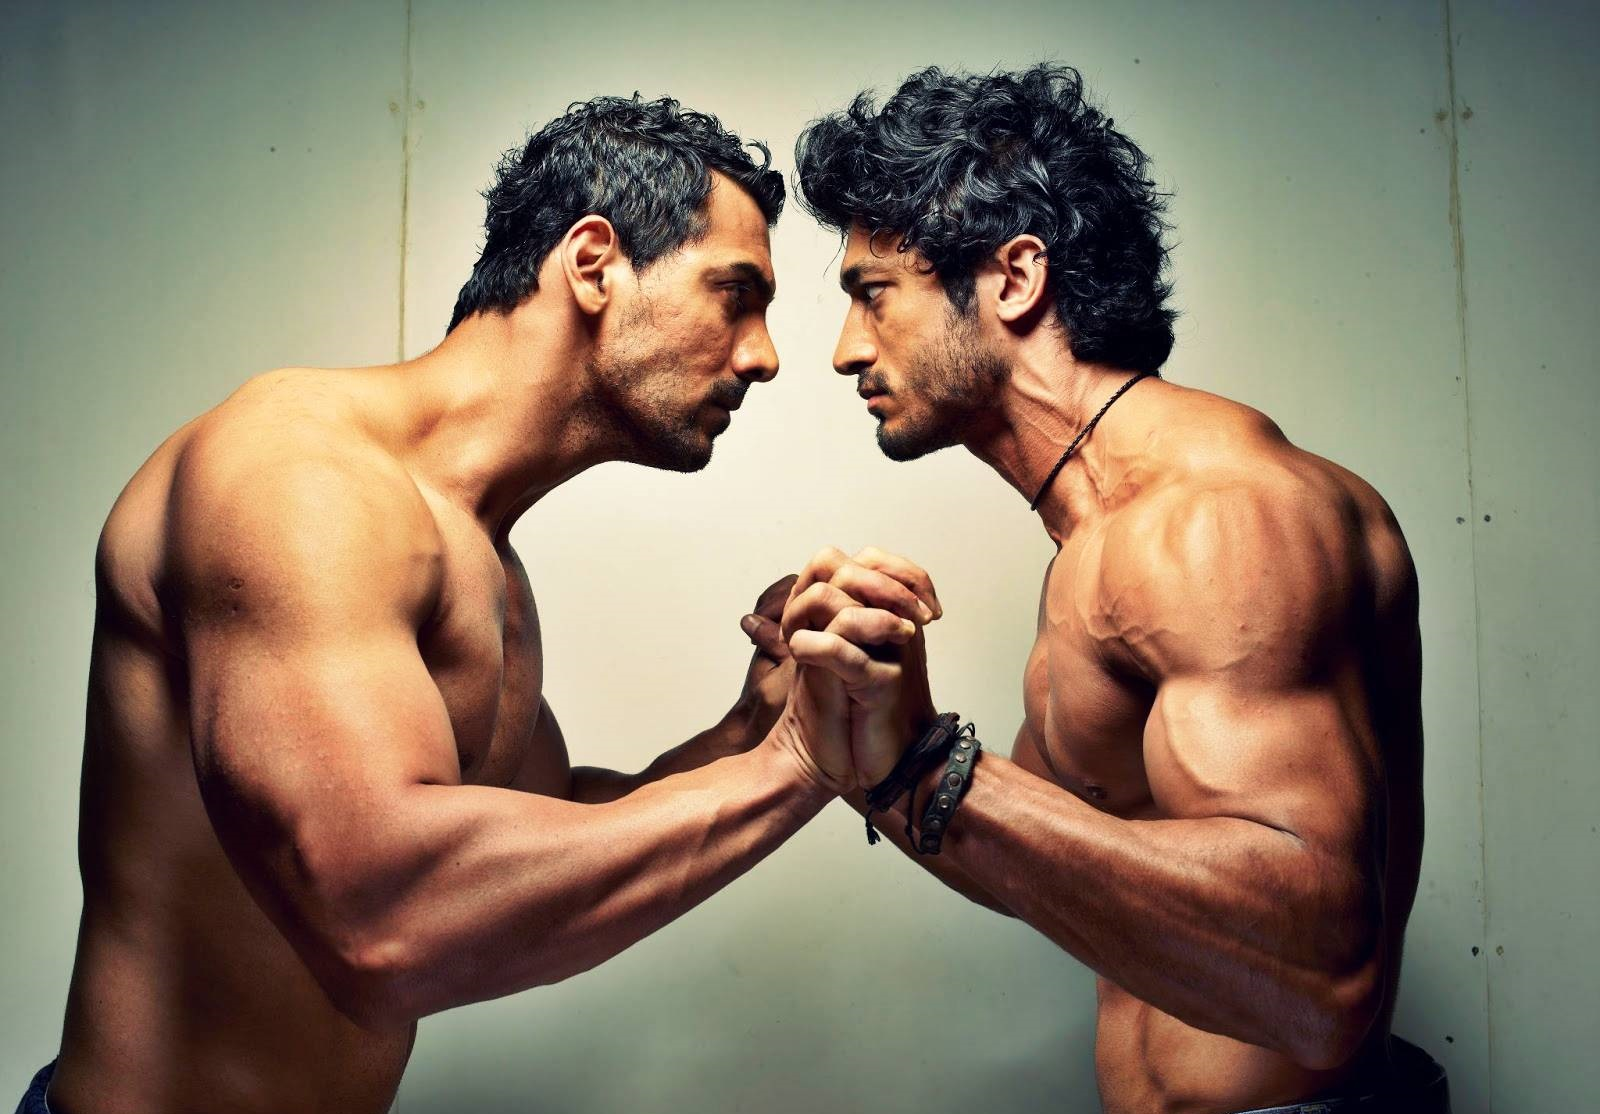 abraham body wallpaper muscle wallpaper description john abraham ...